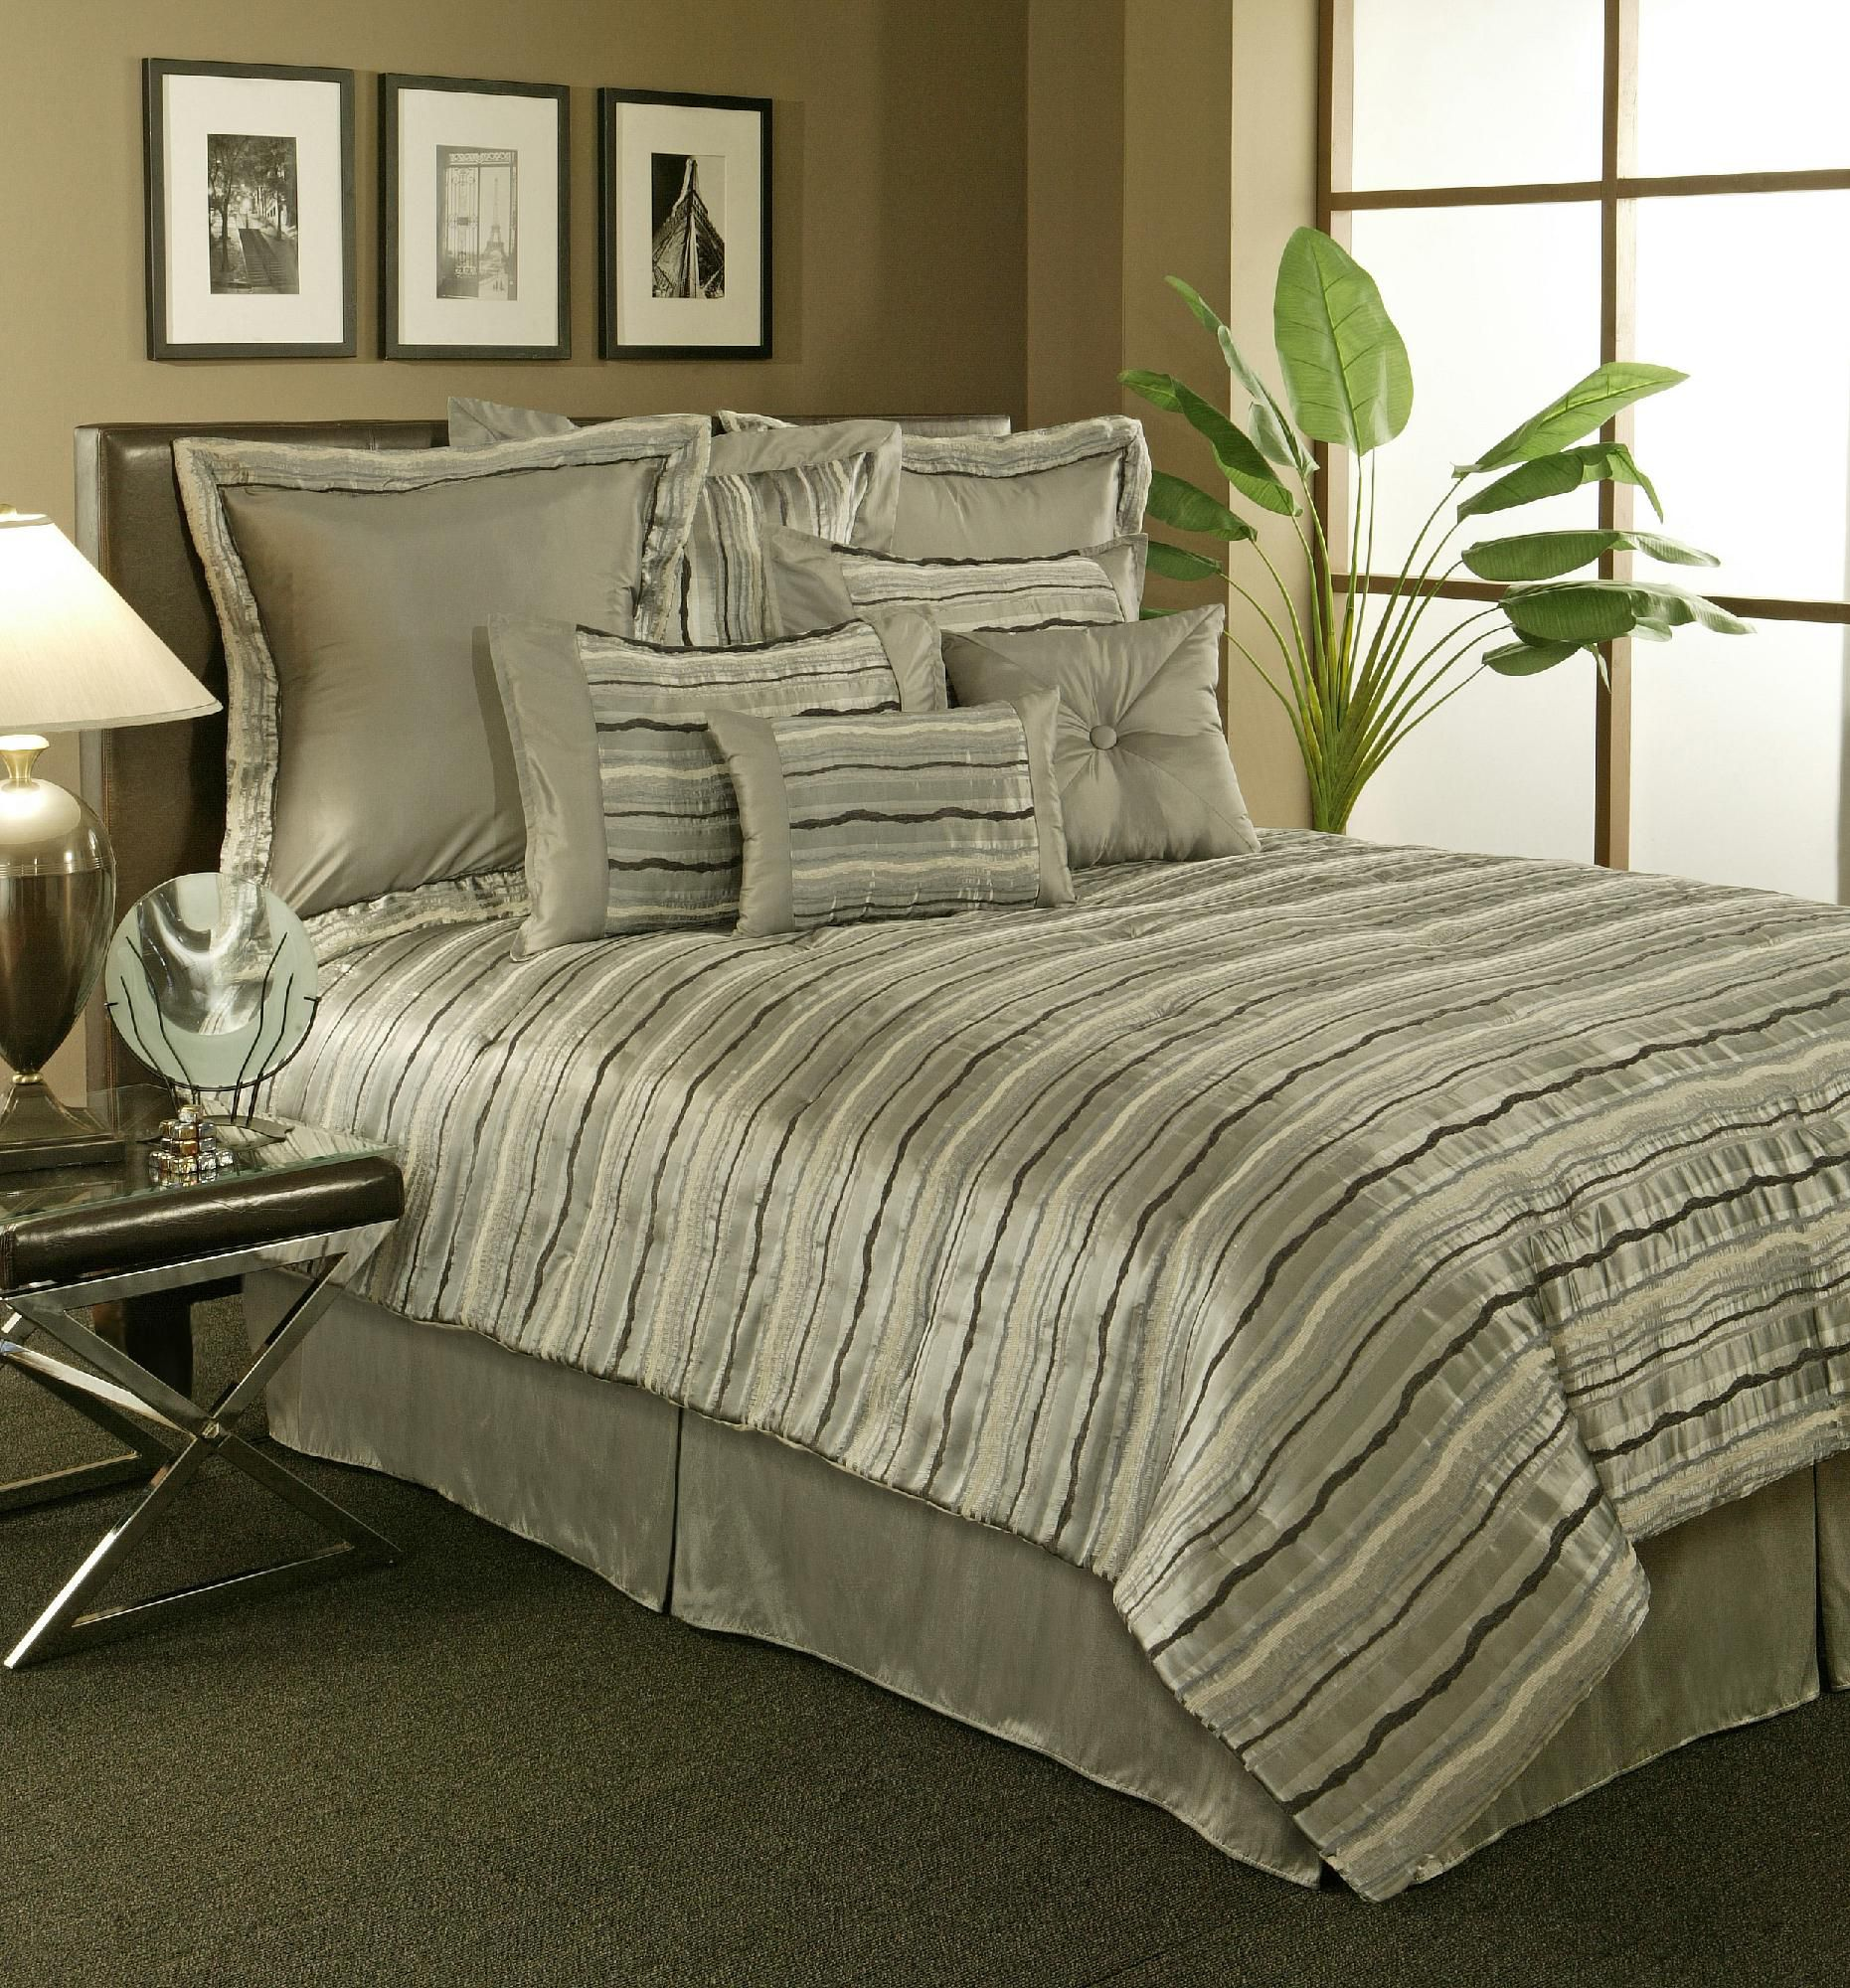 Stretta Spa Queen Comforter set